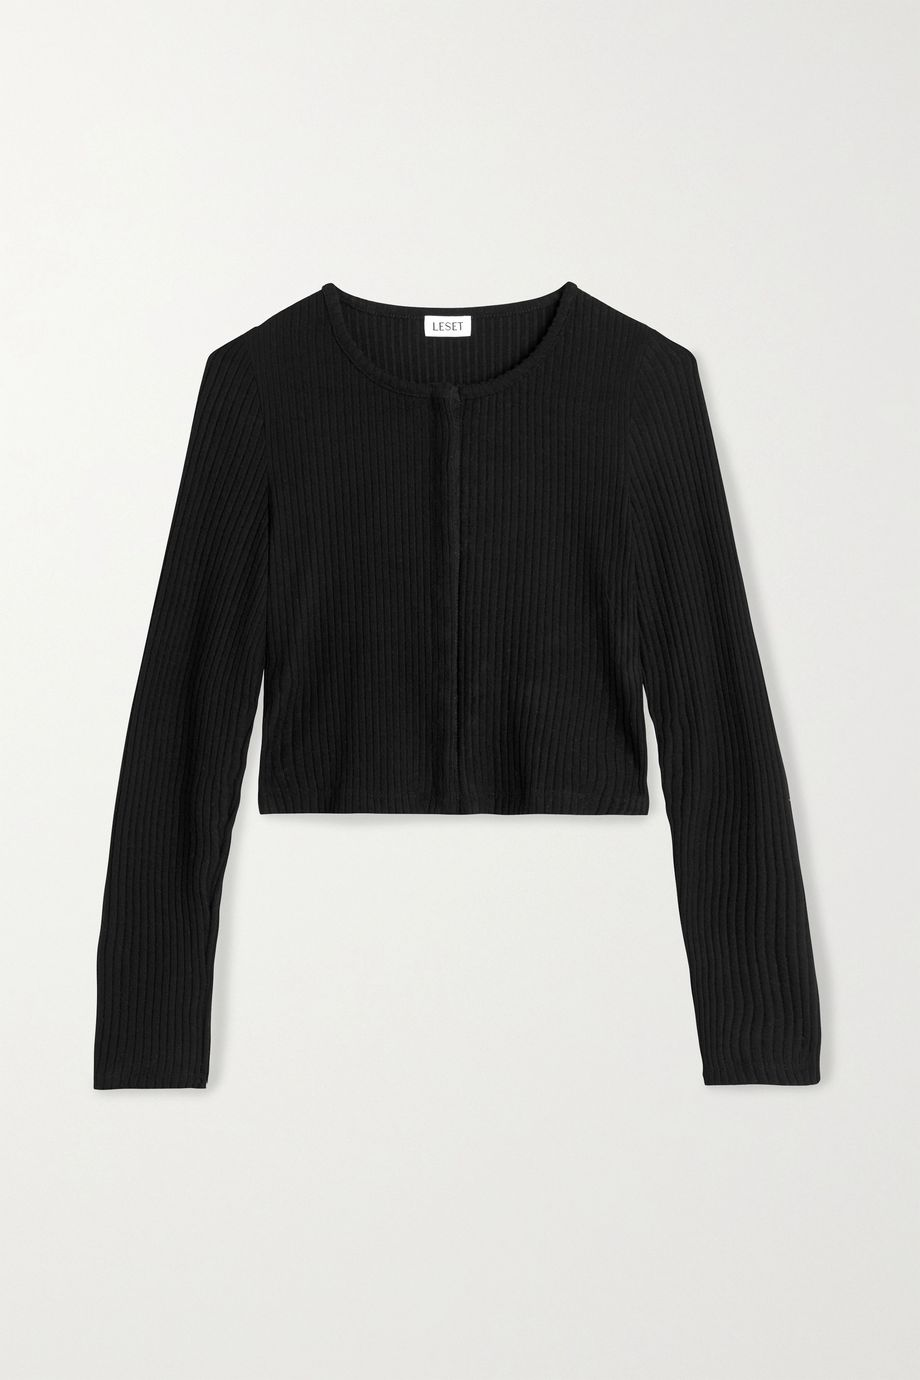 LESET Alison cropped ribbed stretch-knit cardigan